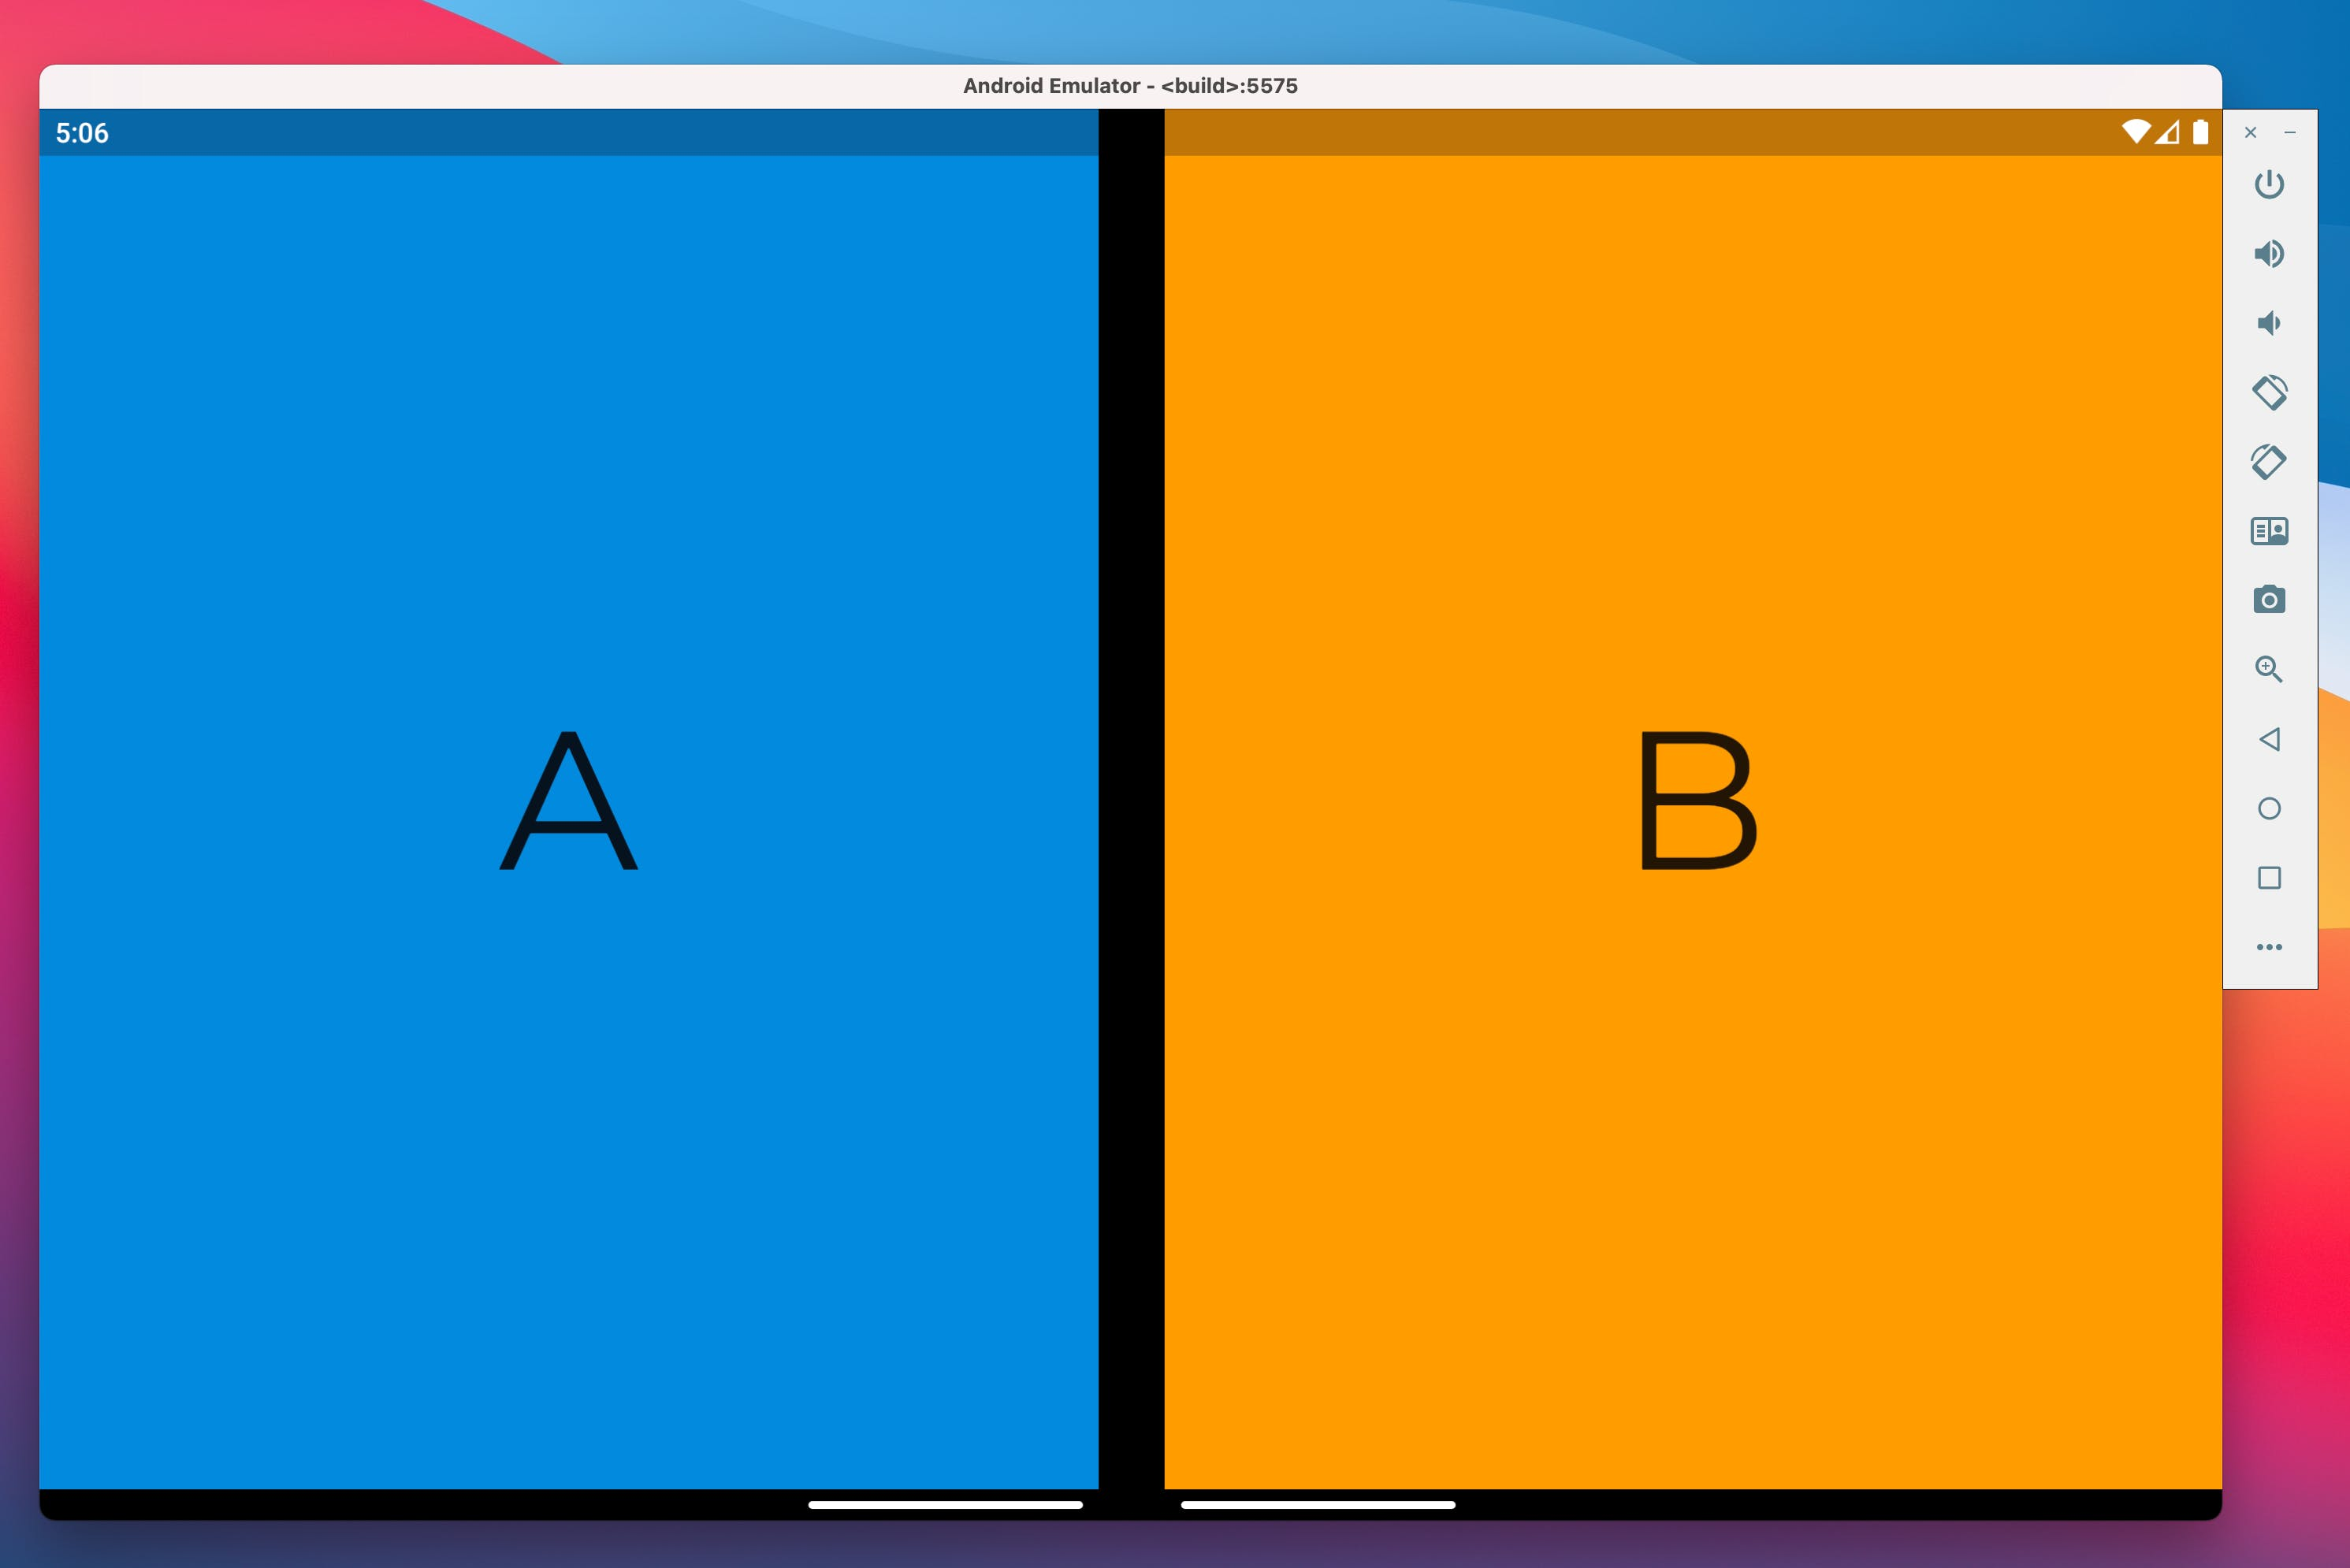 twopaneview-surfaceduo-simple.png